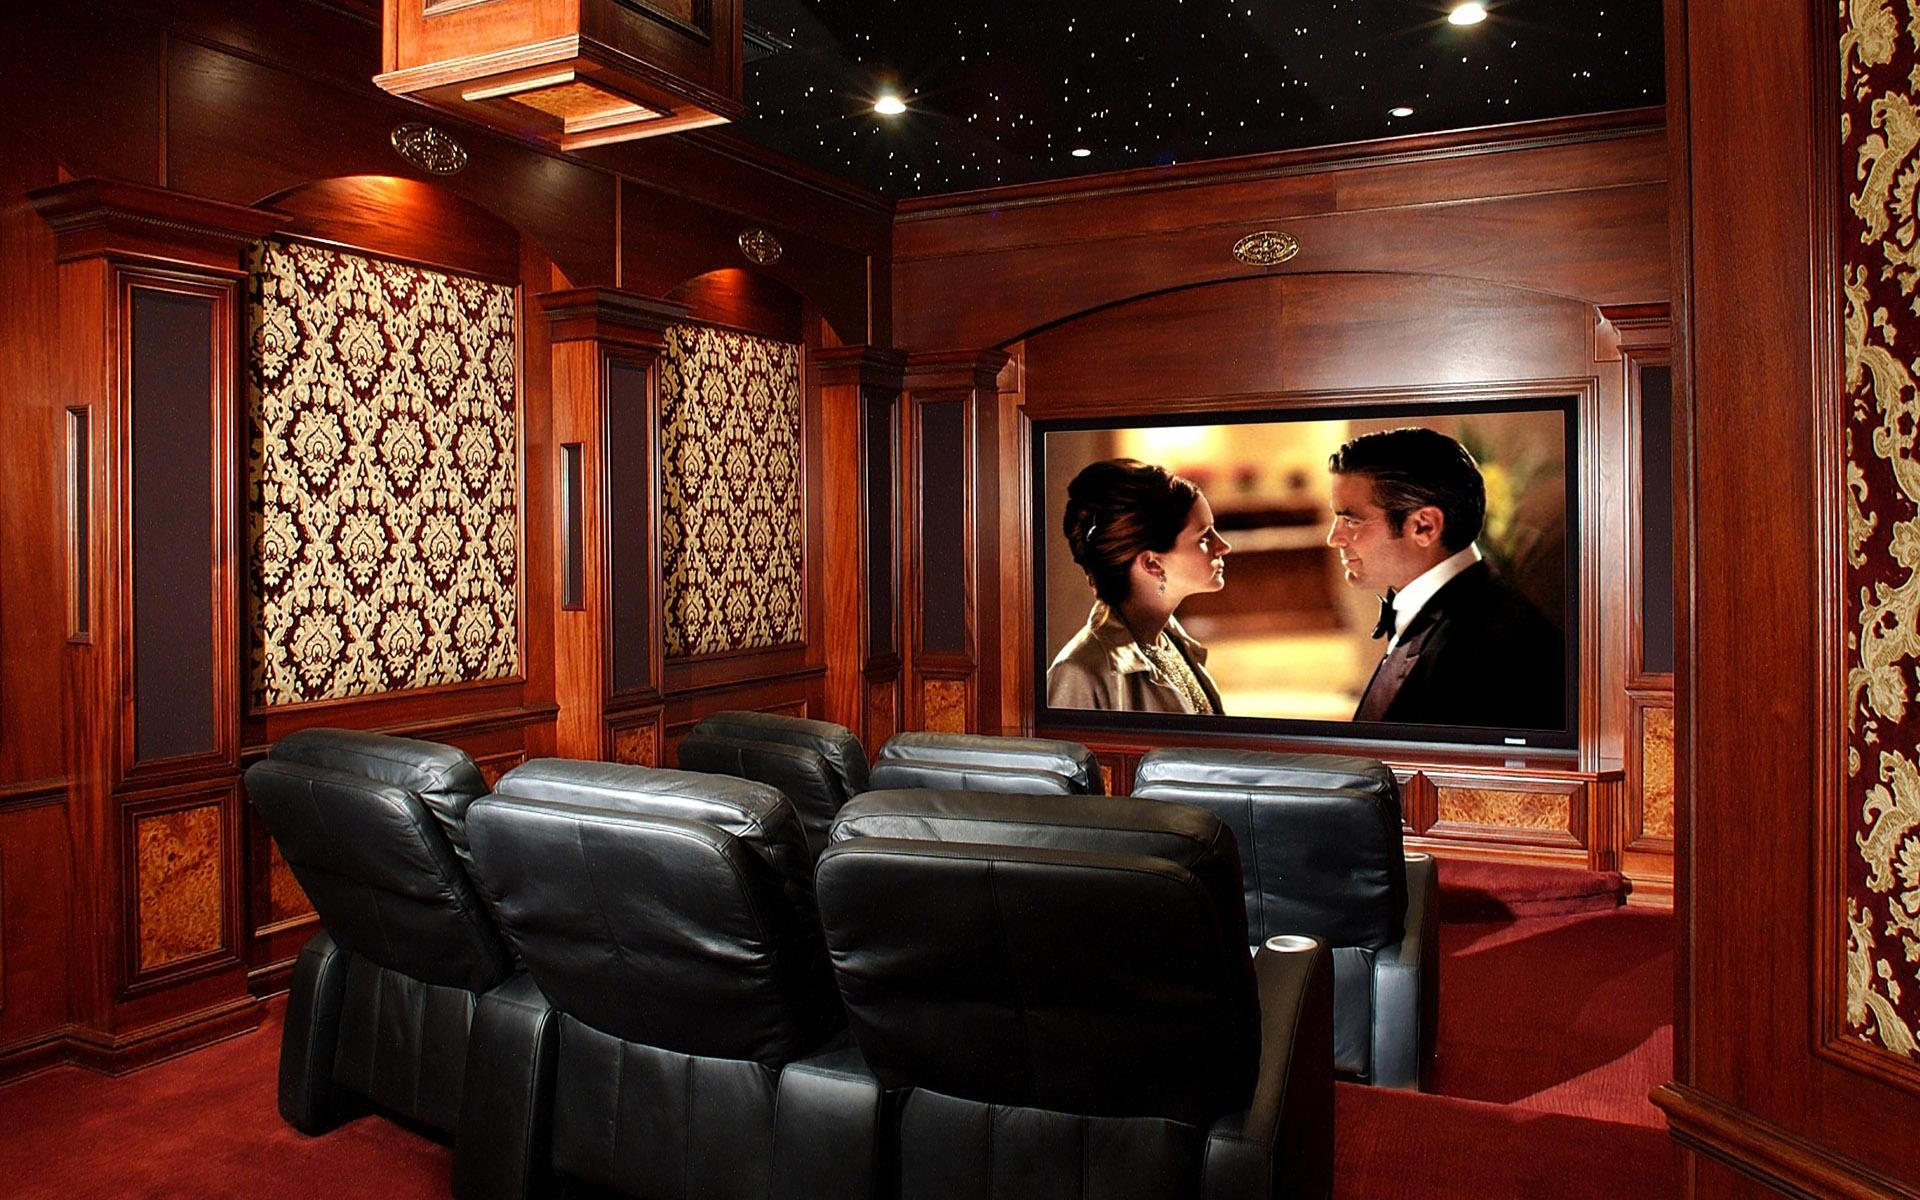 ... theater wallpaper backgrounds movie theater wallpaper home theatre